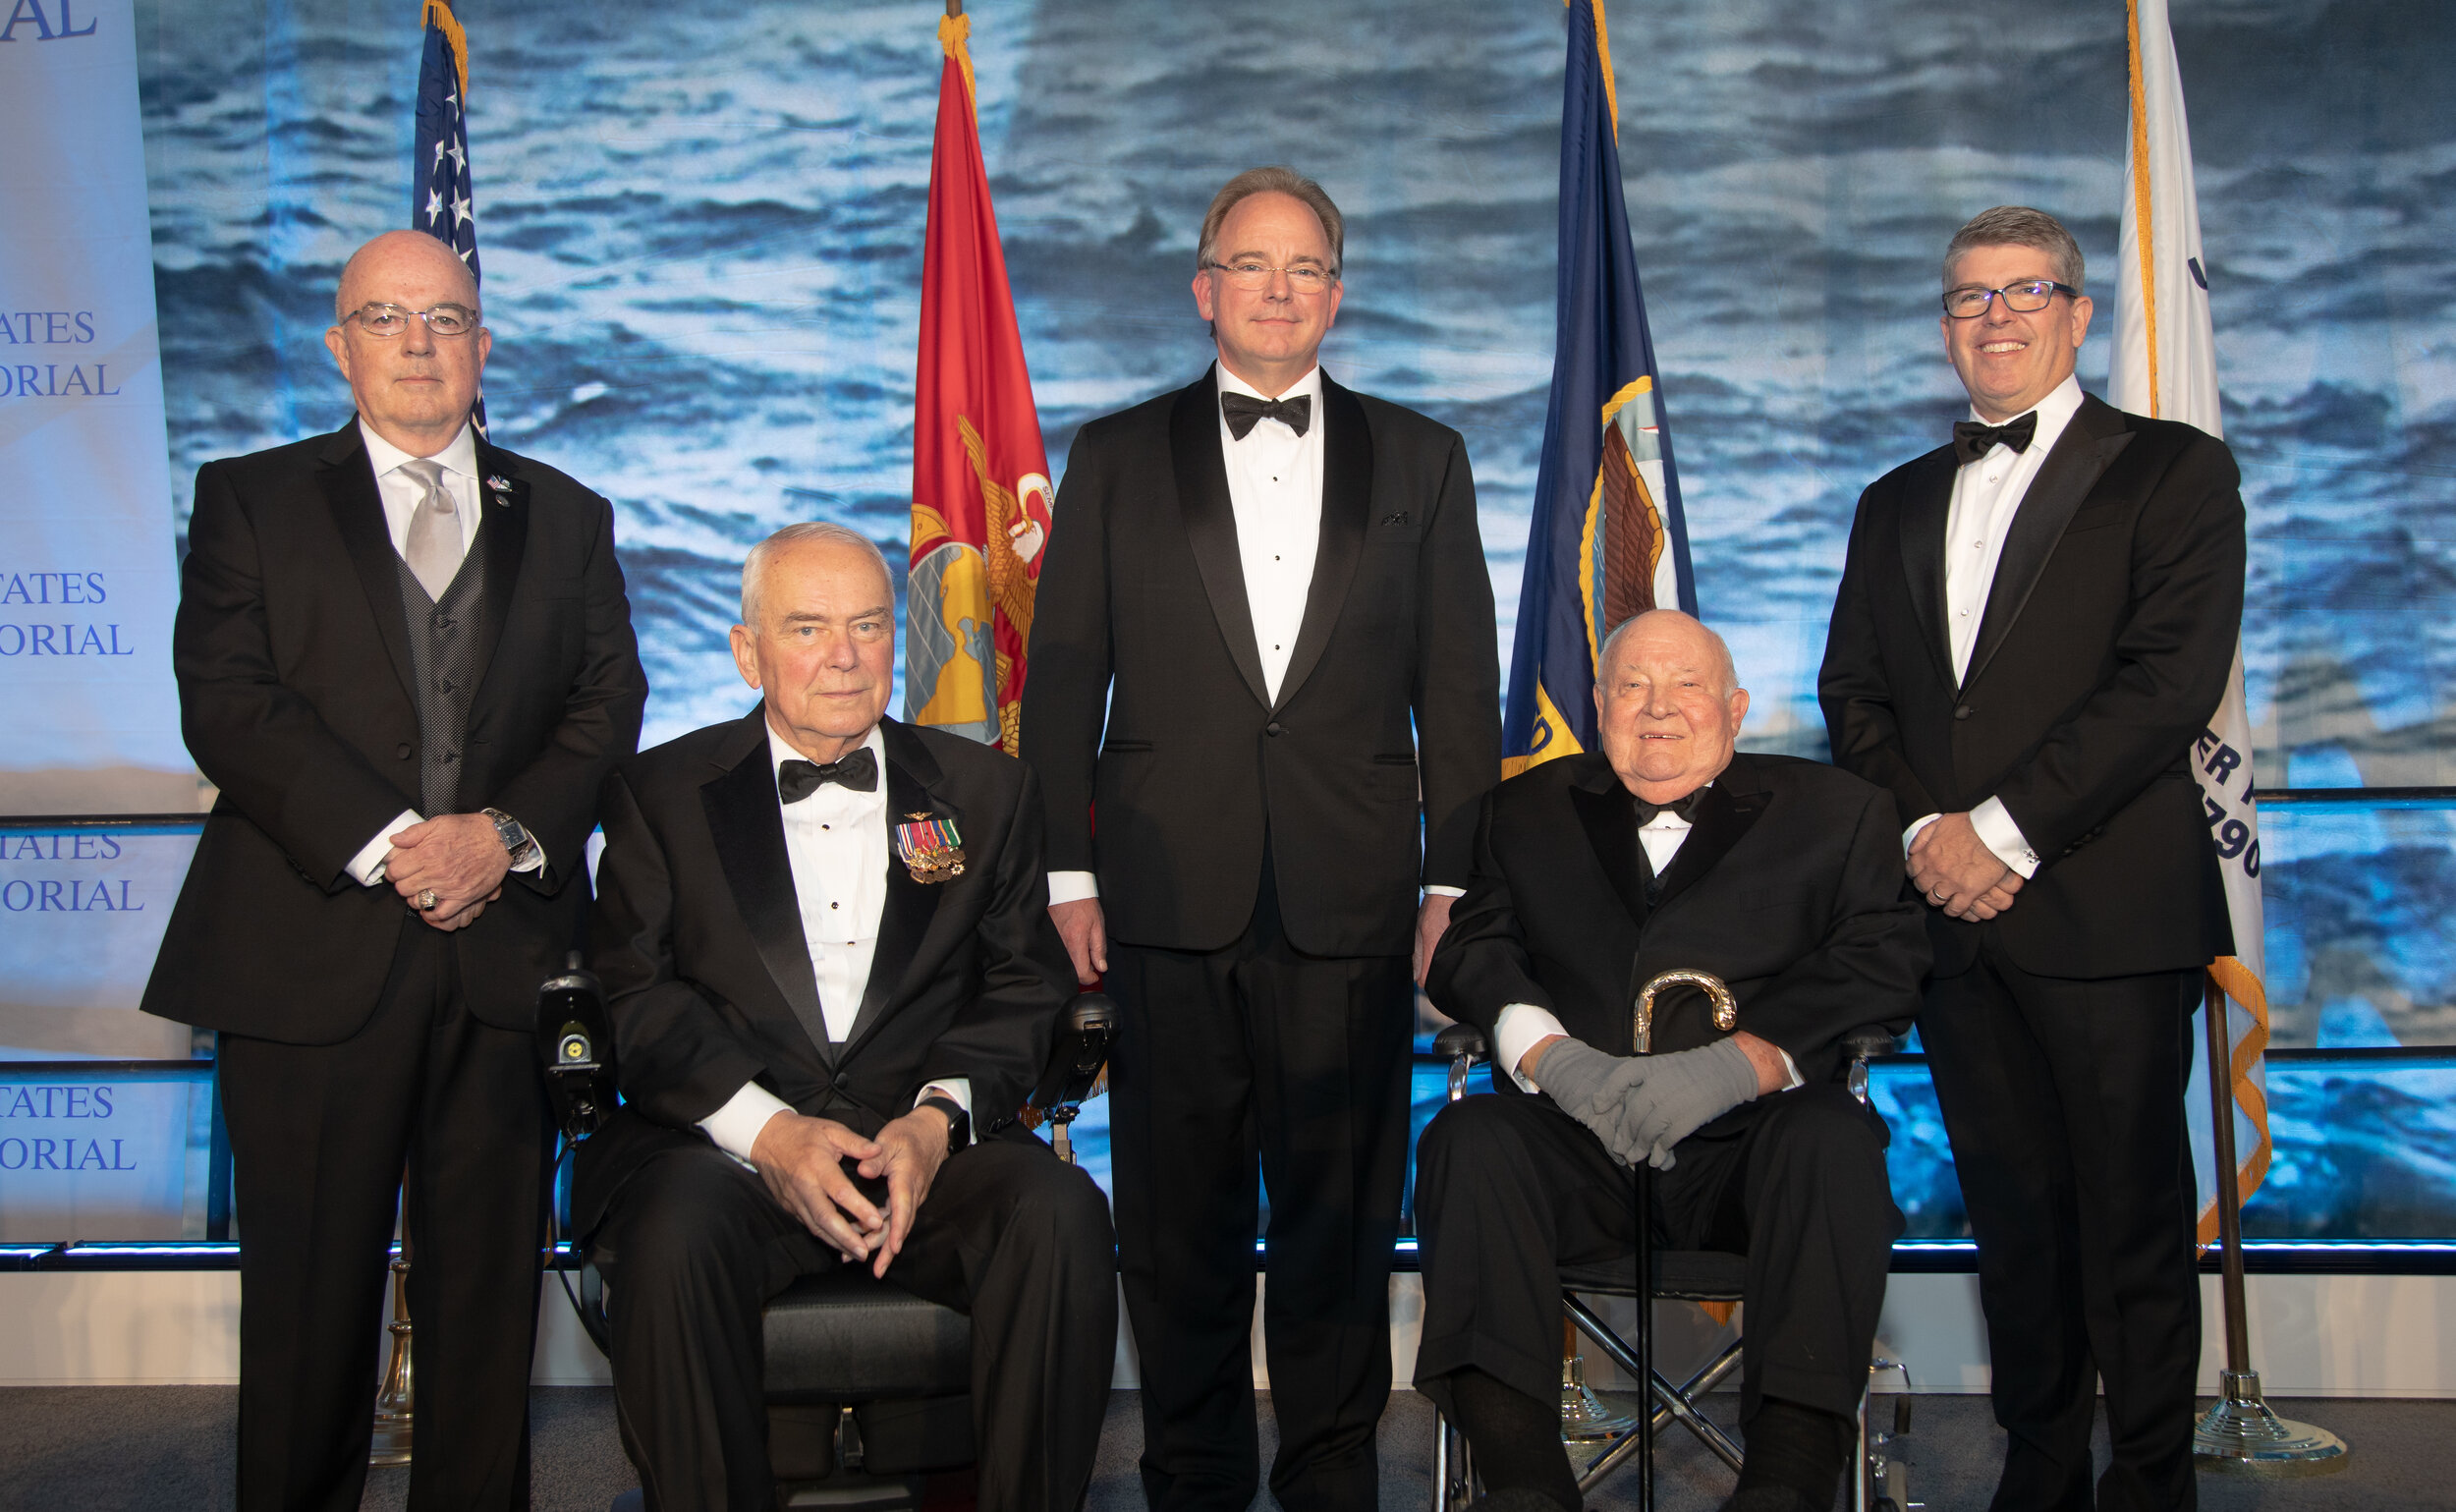 2019 Lone Sailor Awards Dinner  Admiral John C. Harvey, USN (Ret.), Paul Edward Galanti, Martin Kropelnicki, President & CEO of California Water Service Group, Dr. Jack London, Rear Admiral Frank Thorp IV, USN (Ret.), President & CEO of the Navy Memorial